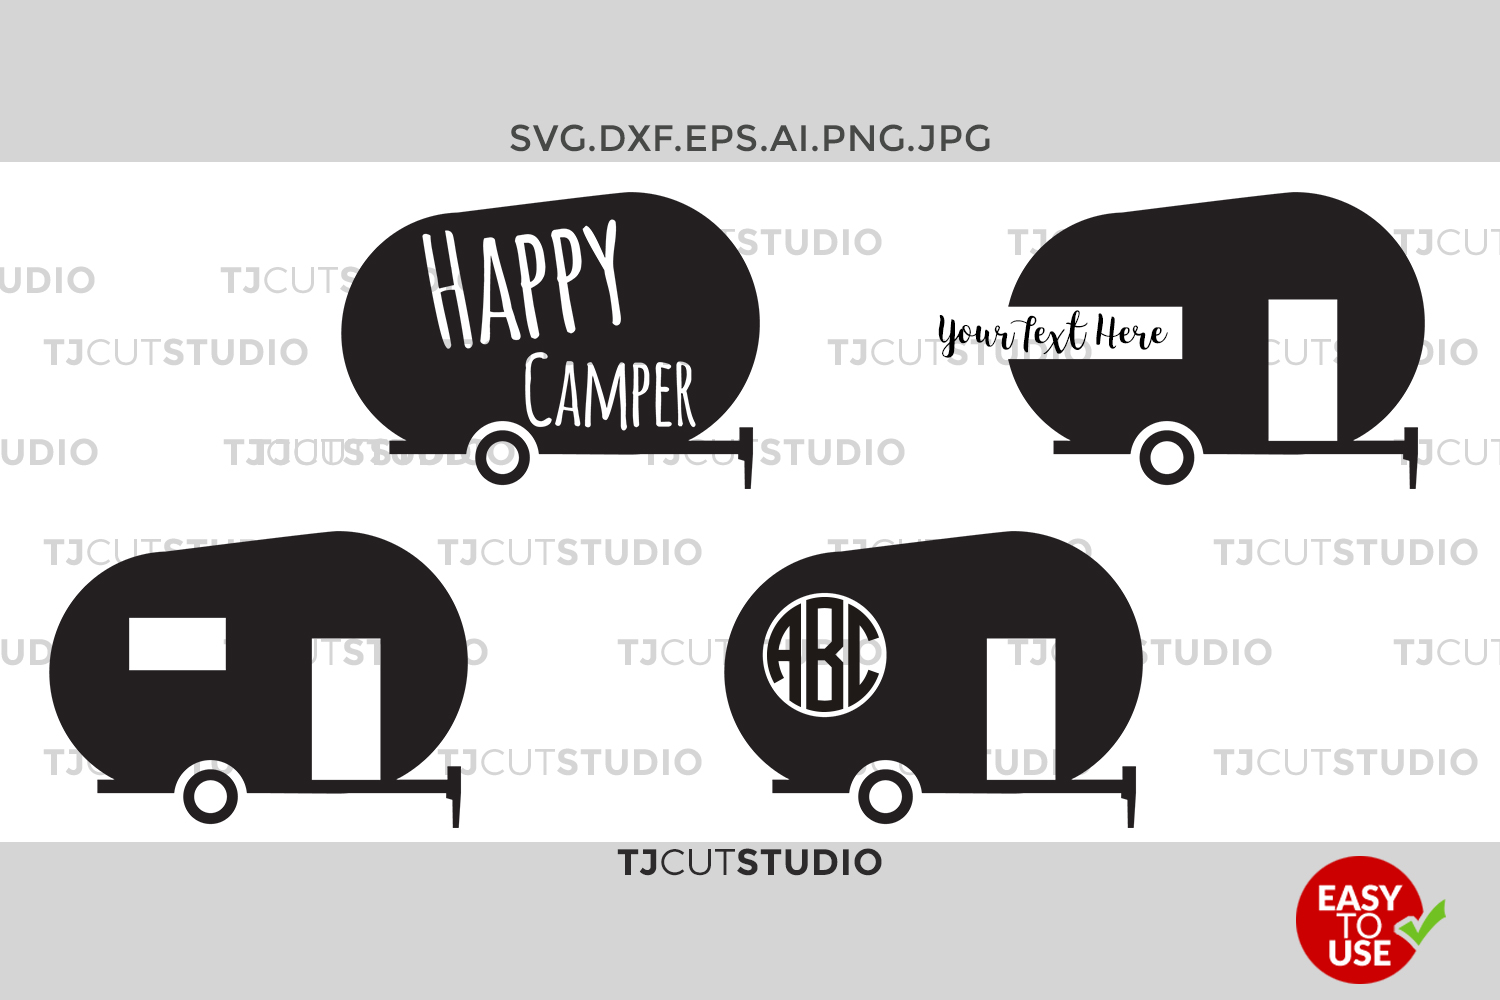 Camper Svg Happy Files For Silhouette Cameo Or